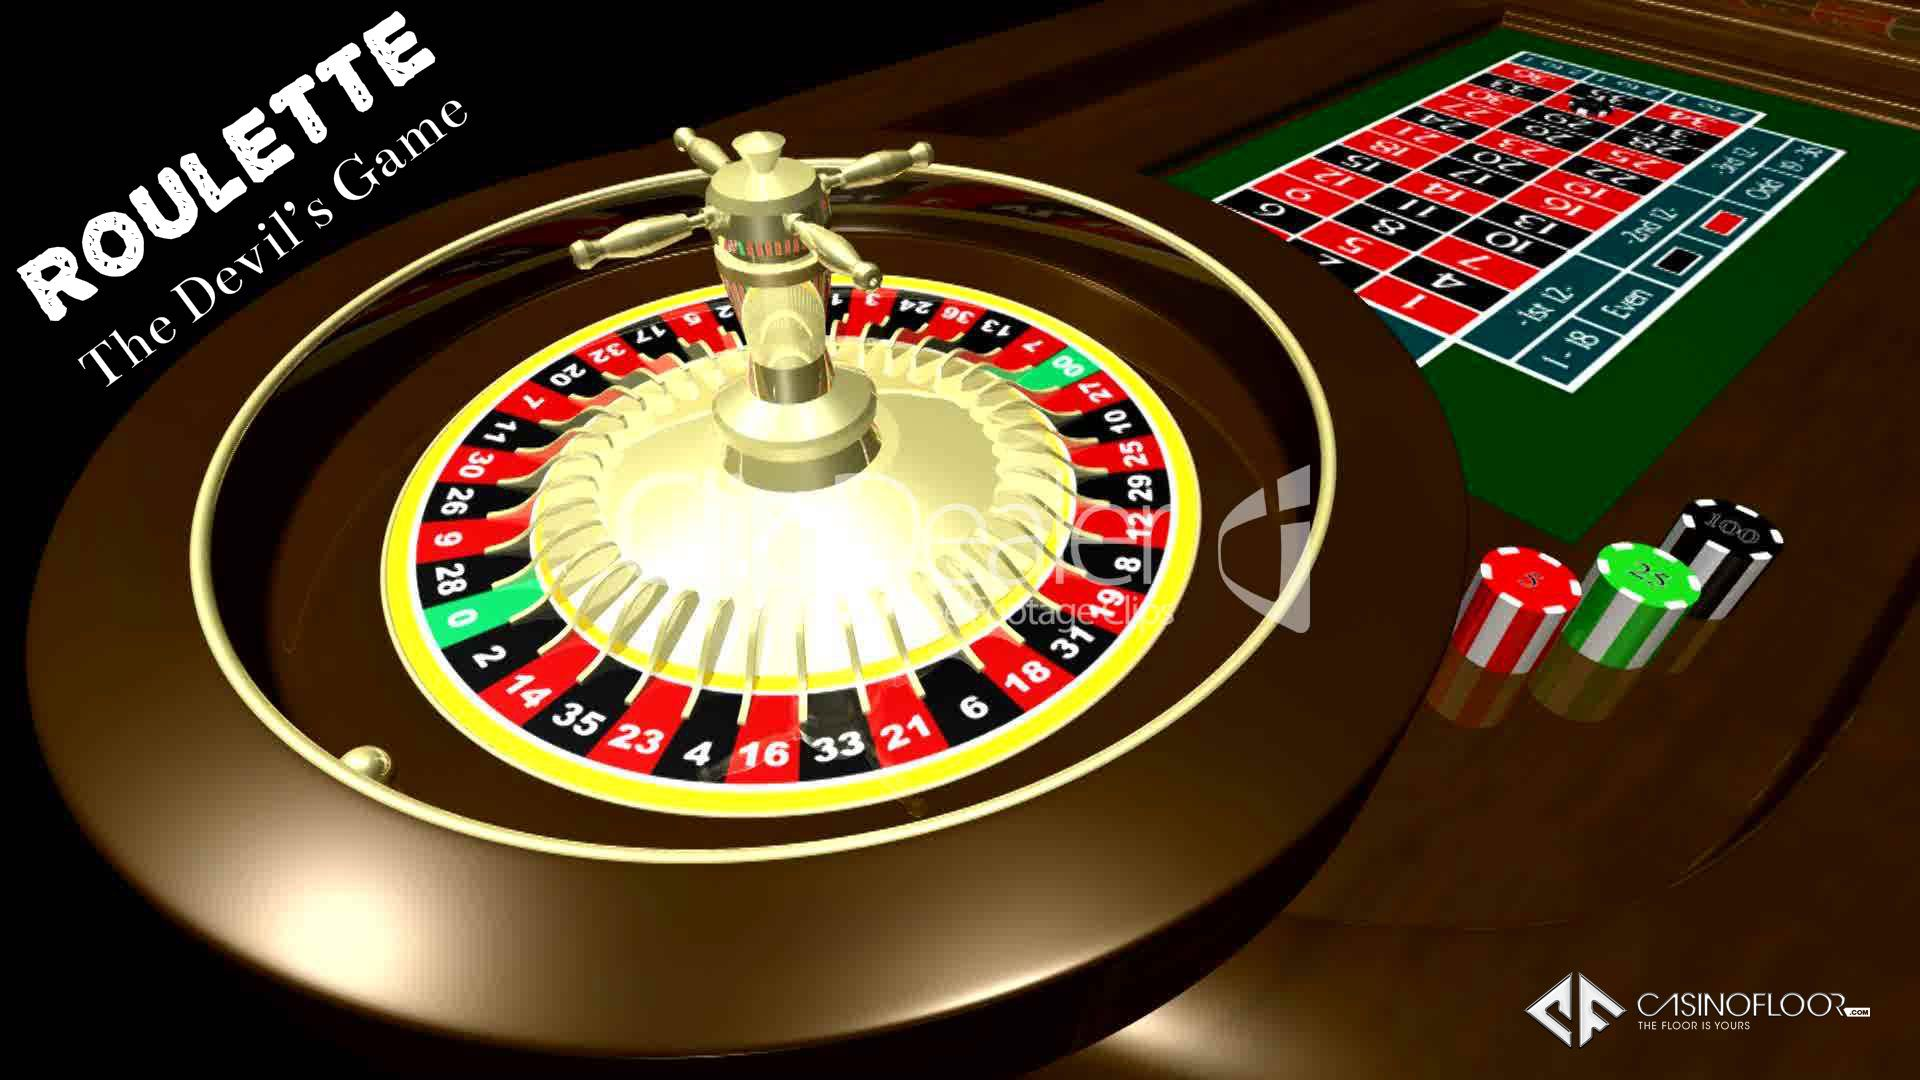 Names of all casino games real money gambling websites